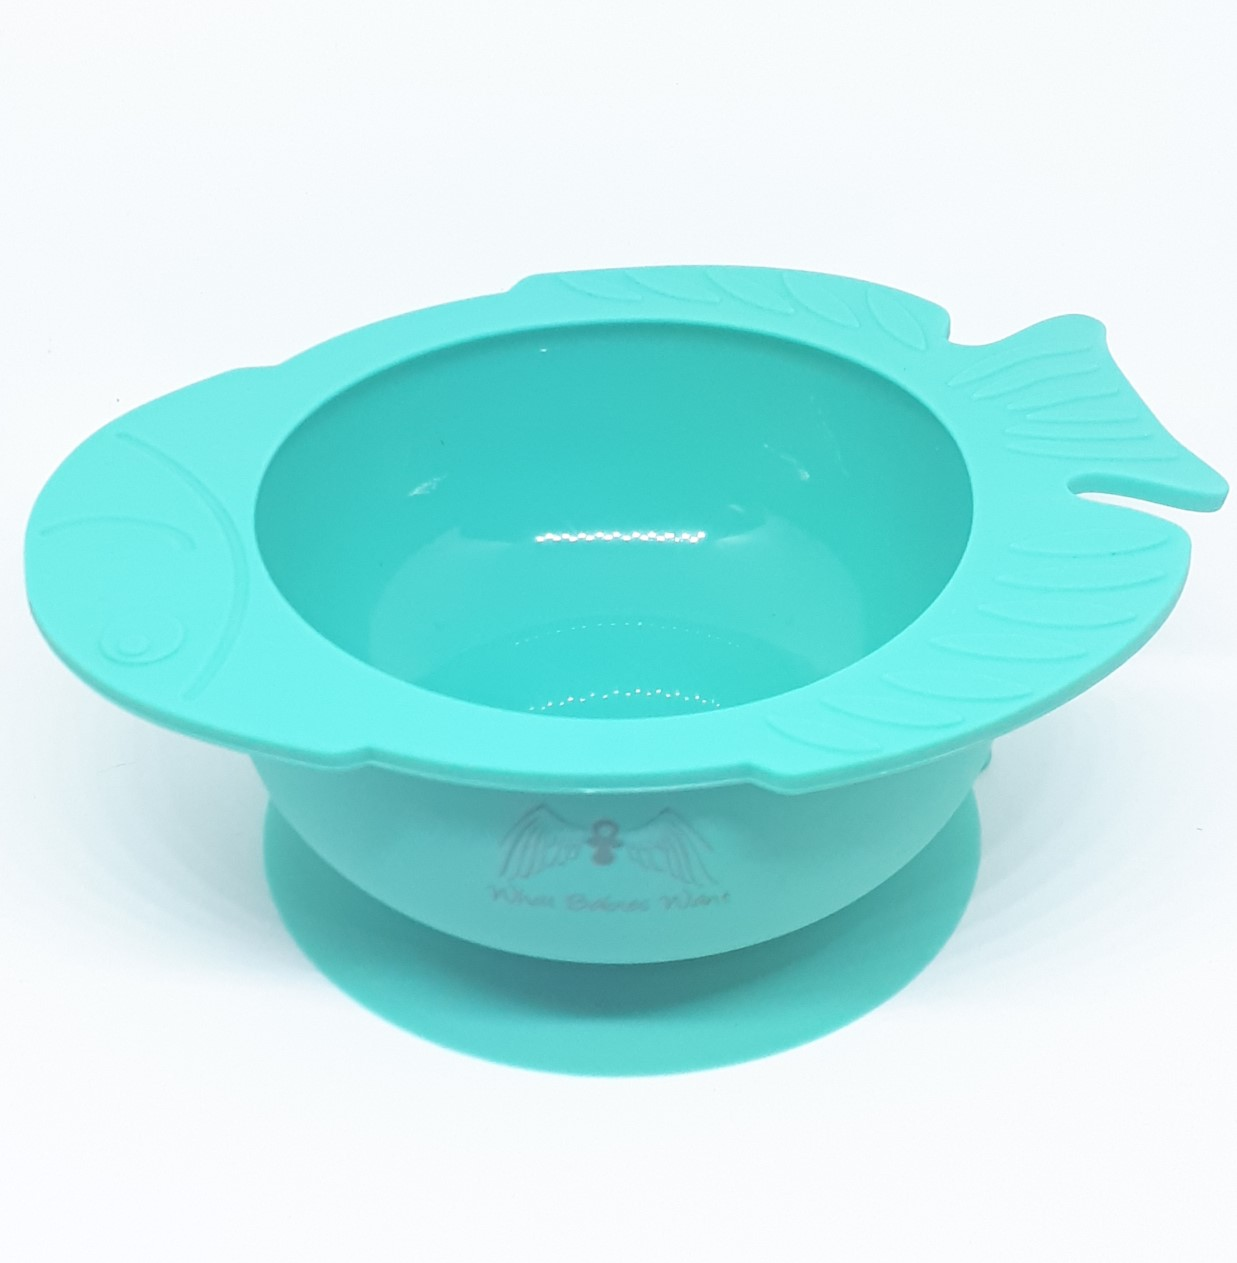 Silicone Fish Bowl Teal Lia And Reese